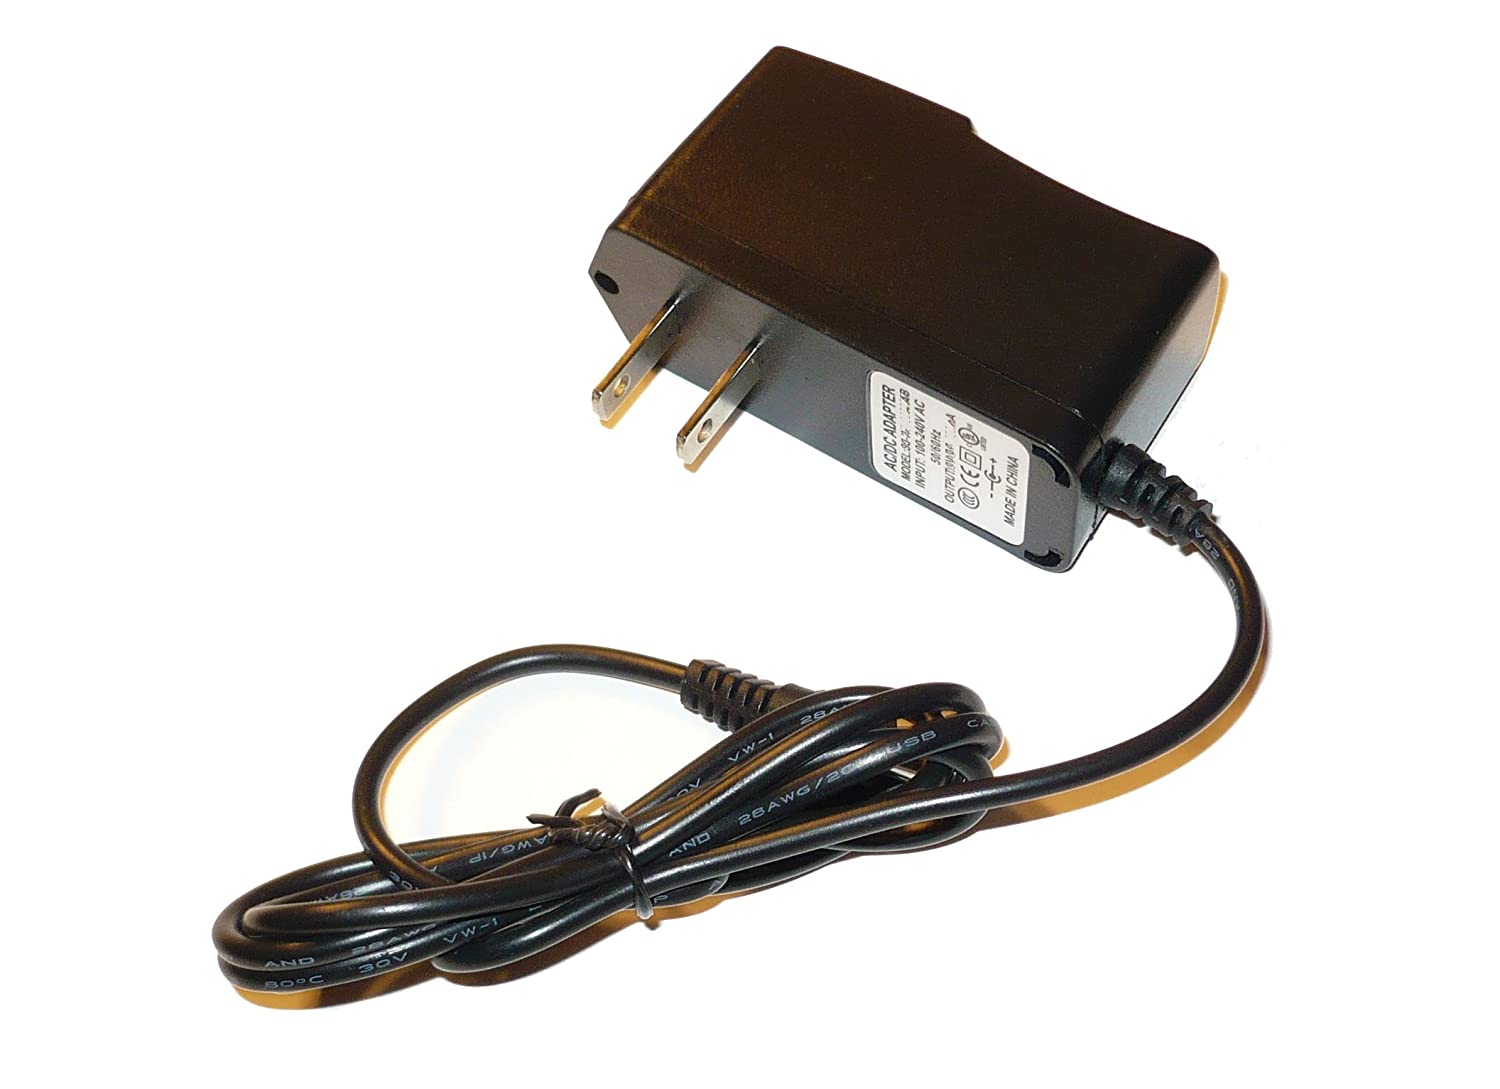 Amazon.com: Power Supply for 2Wire 1000HG 1000HW 5V 2.0A 100-240V ...